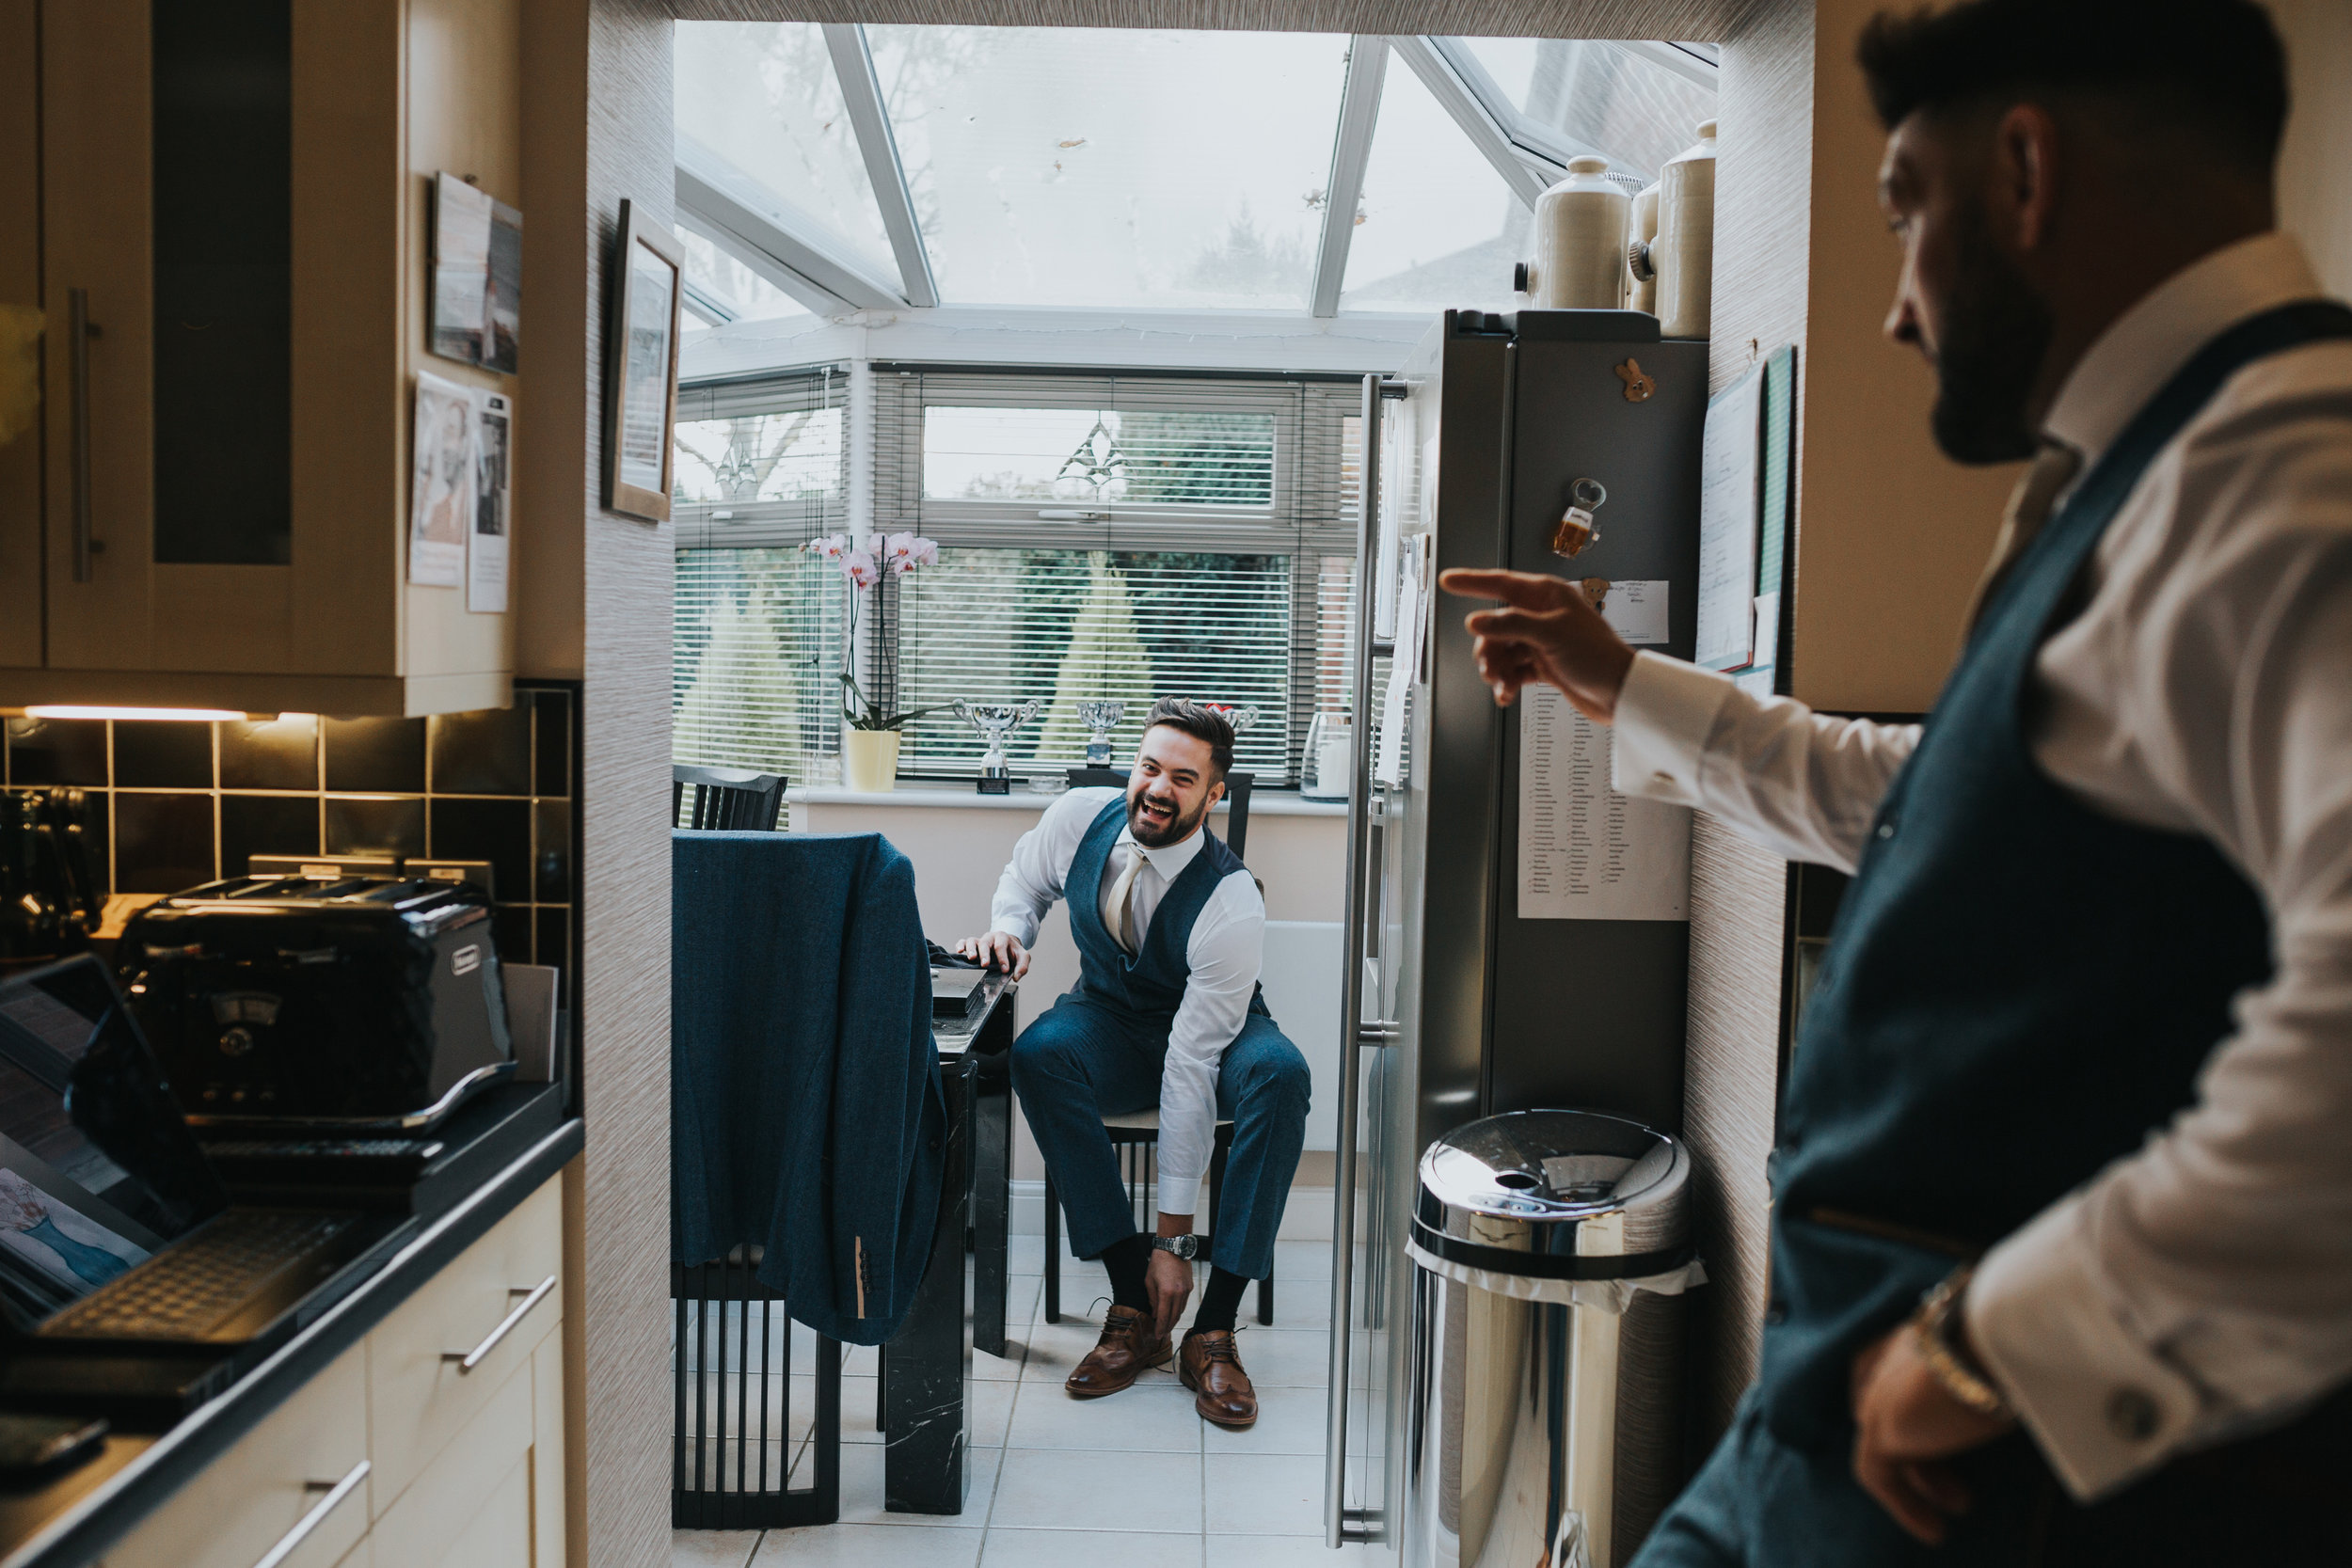 Groomsmen laughing together in the kitchen.